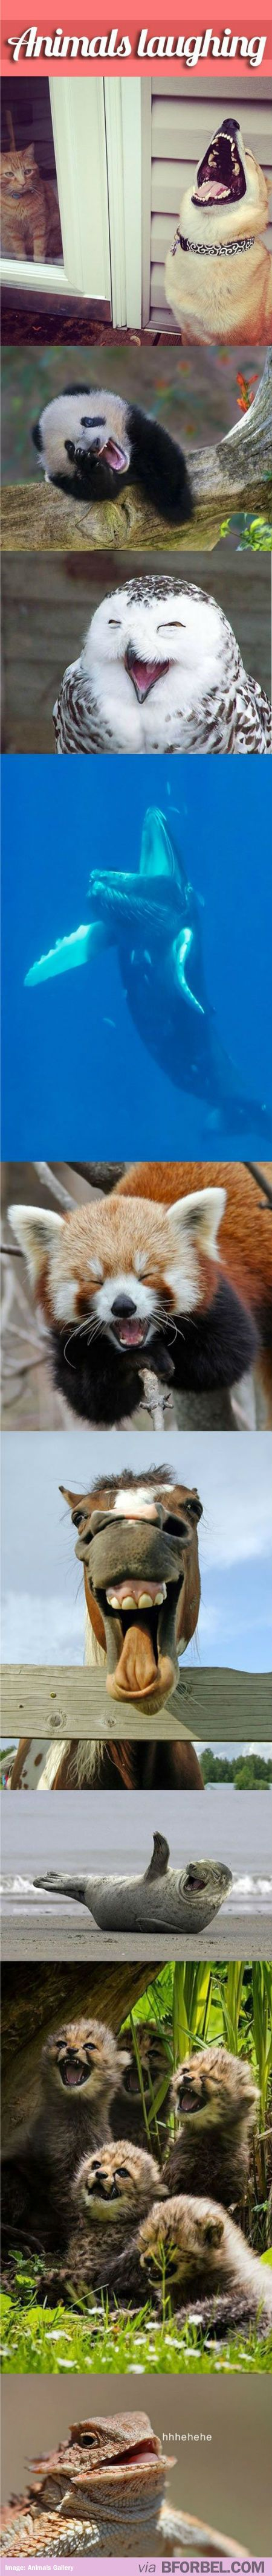 If You're Having A Bad Day, Here Are 9 Animals Laughing Like They Have No Worries In The World…